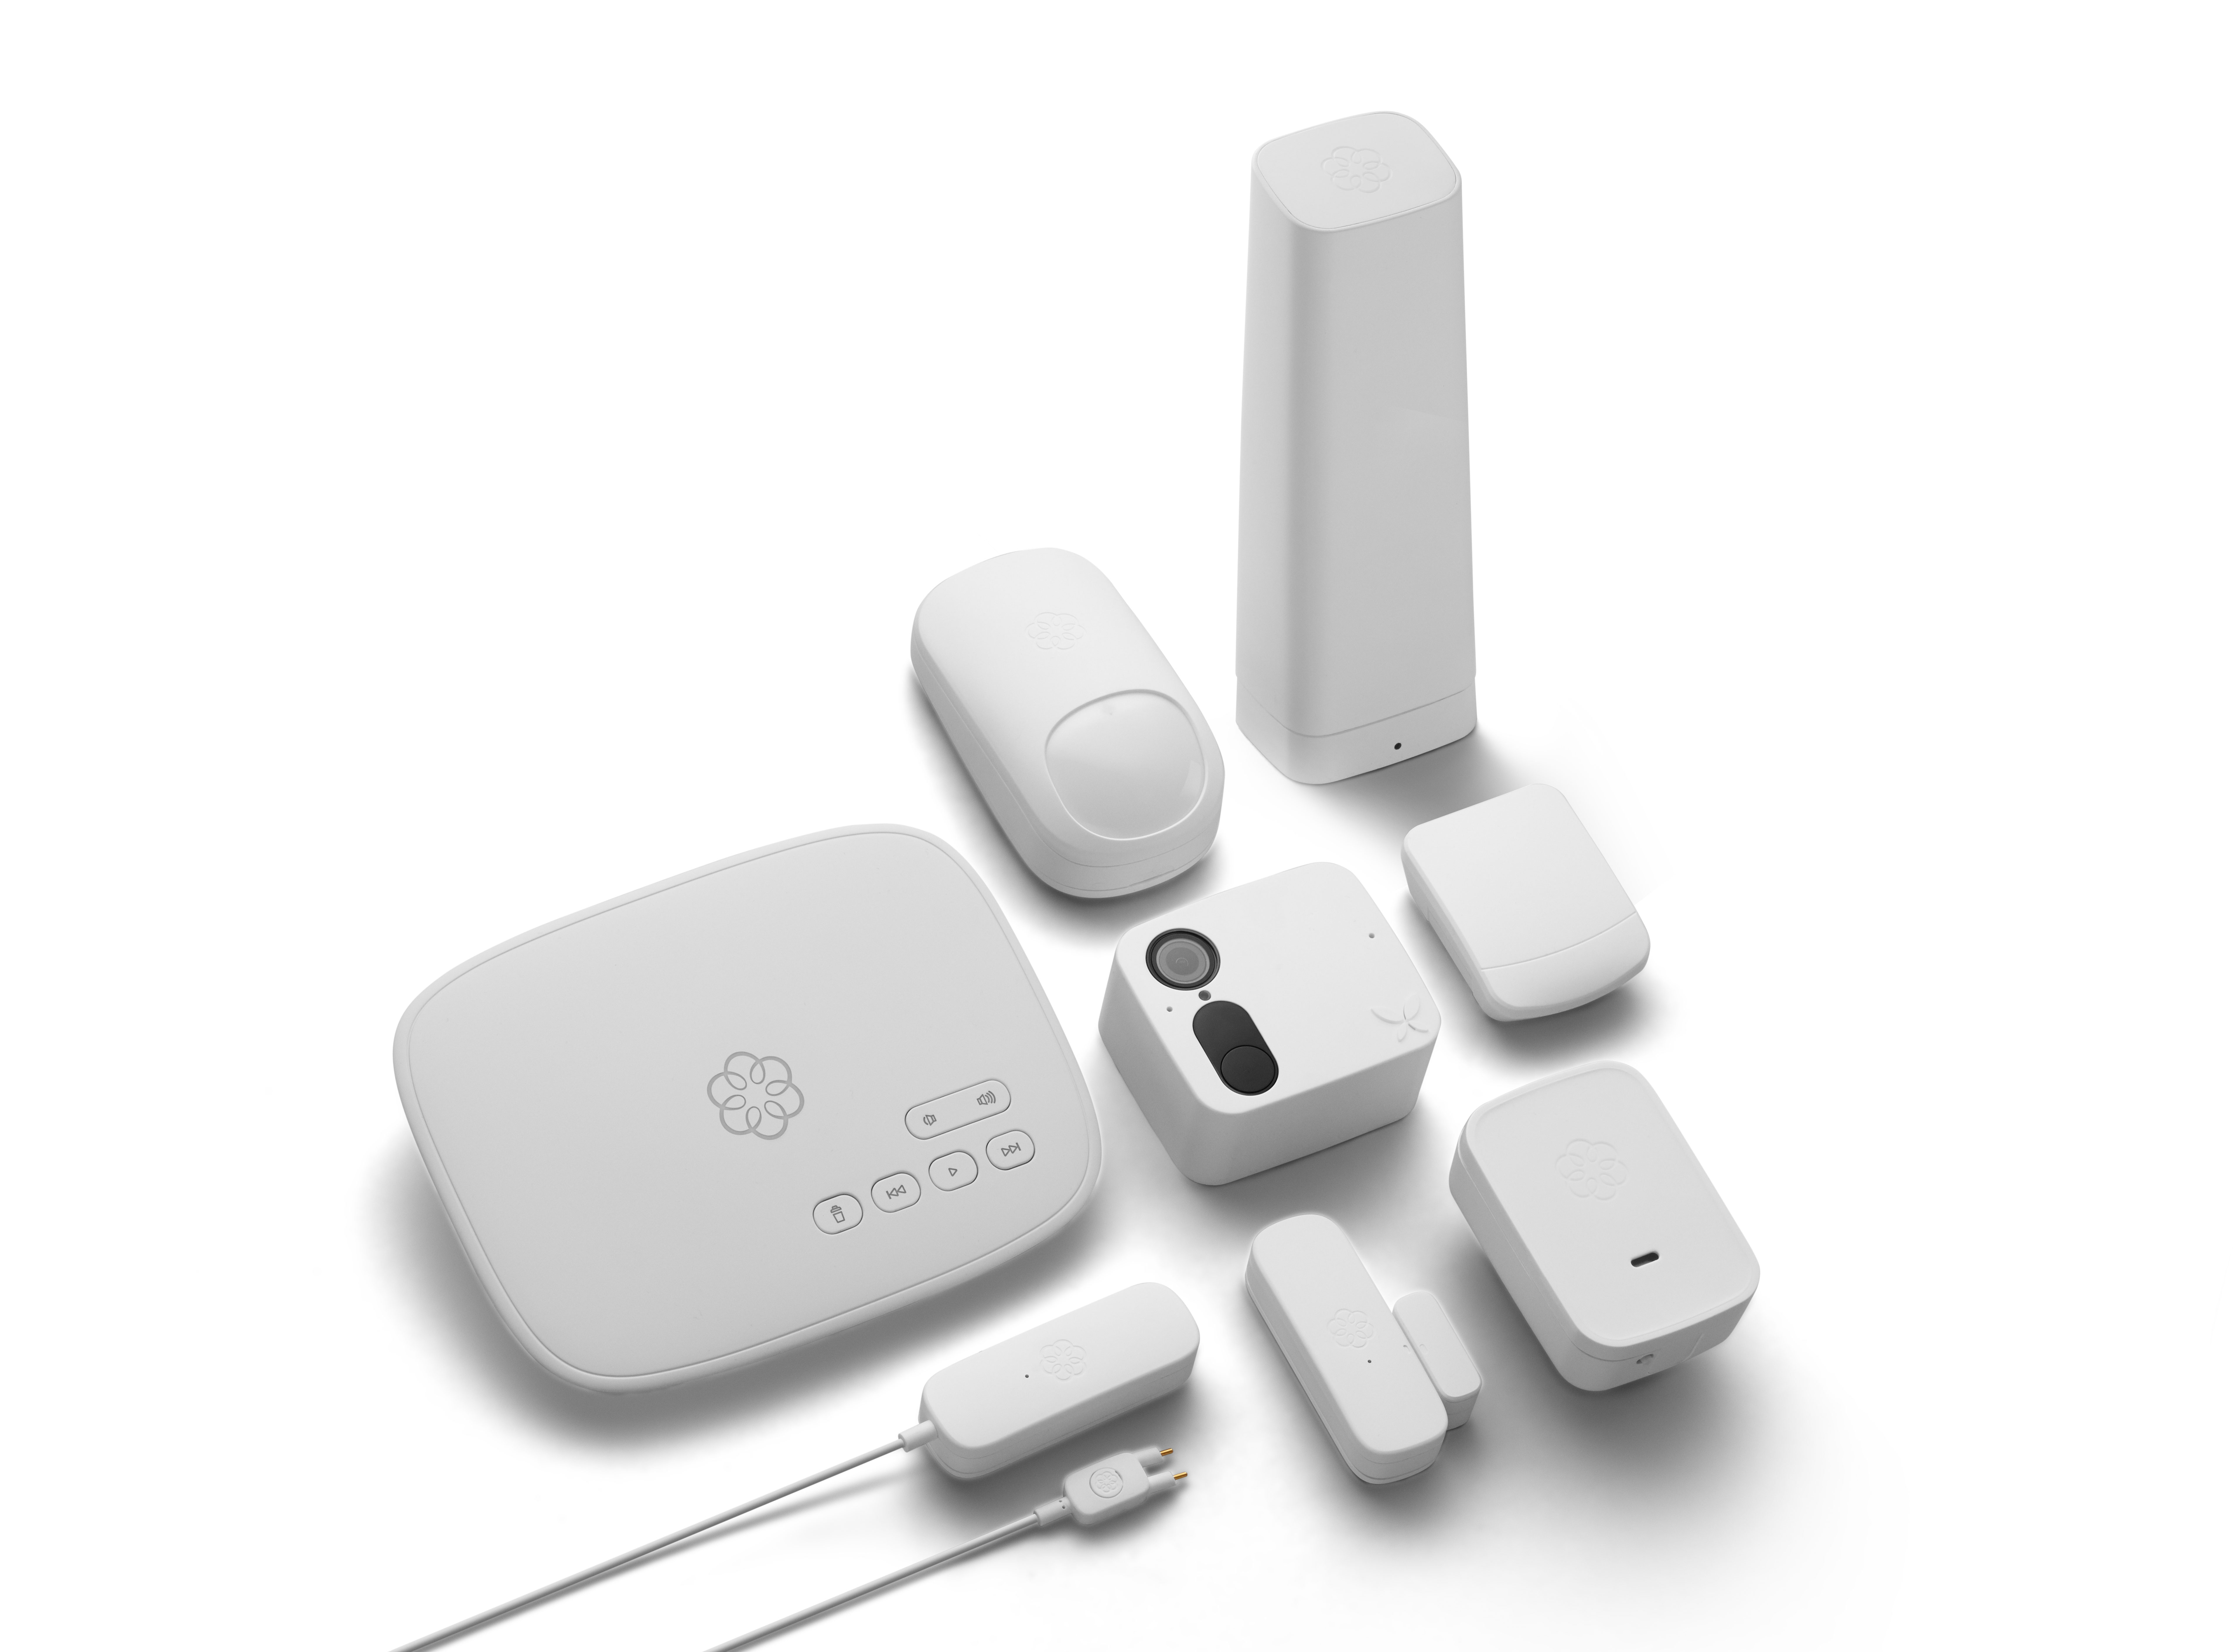 Ooma Smart Security products with Ooma Connect 4G